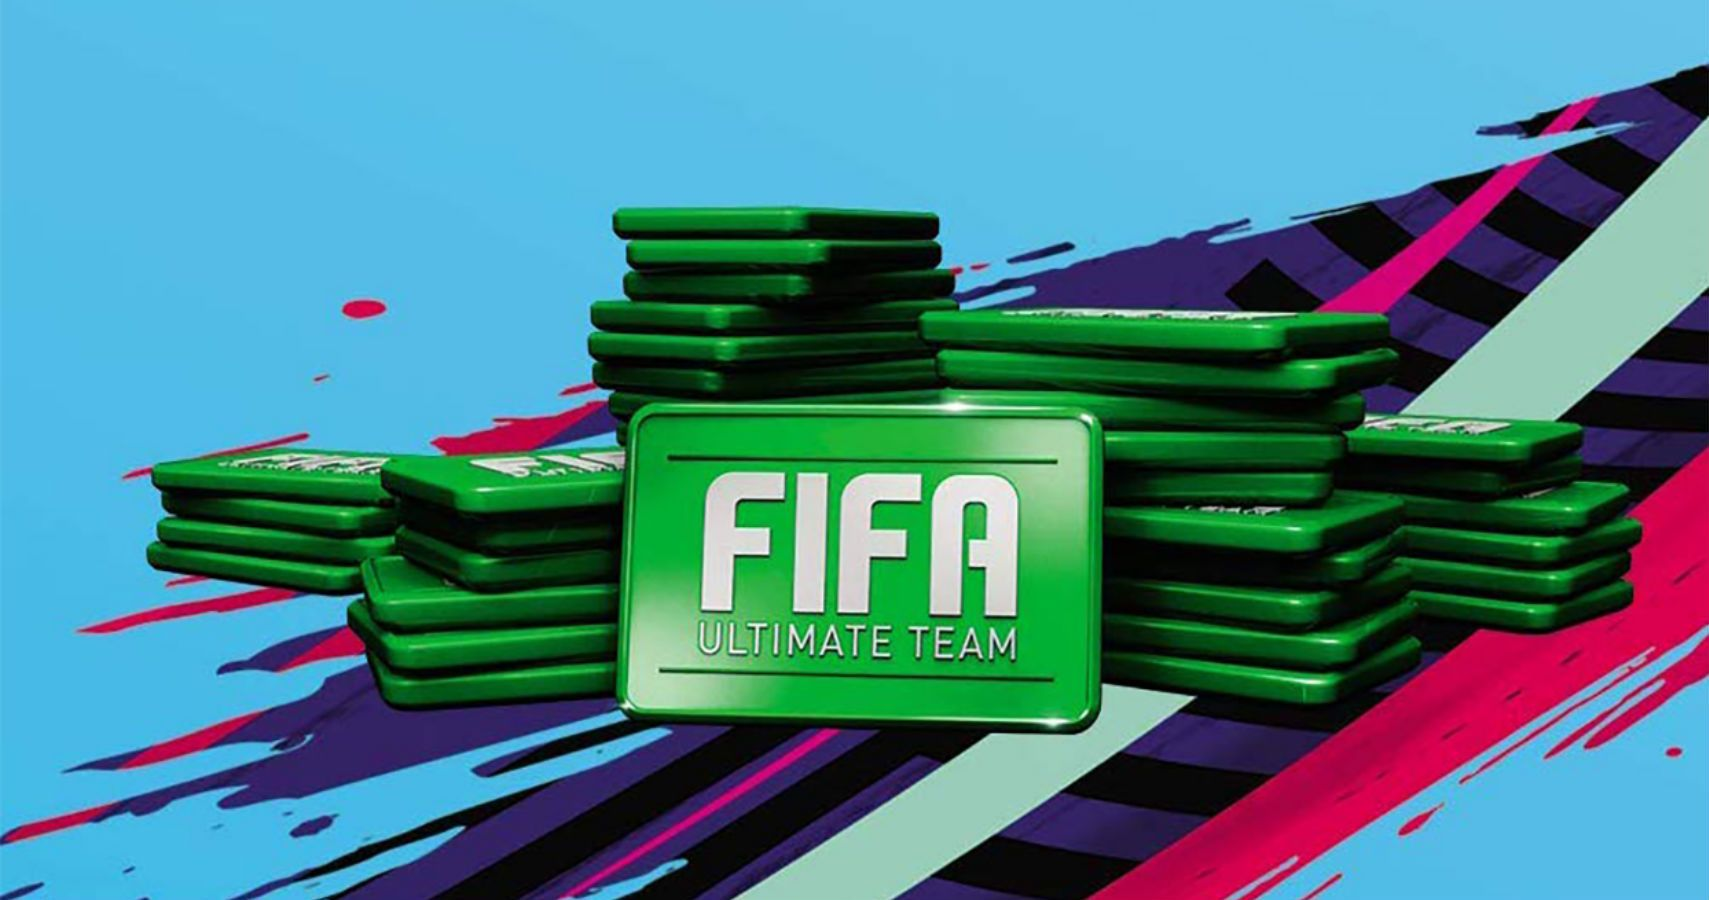 Mom Of Three FIFA-Playing Sons Claims Hackers Used Her Credit Card To Buy 36,000 FIFA Points